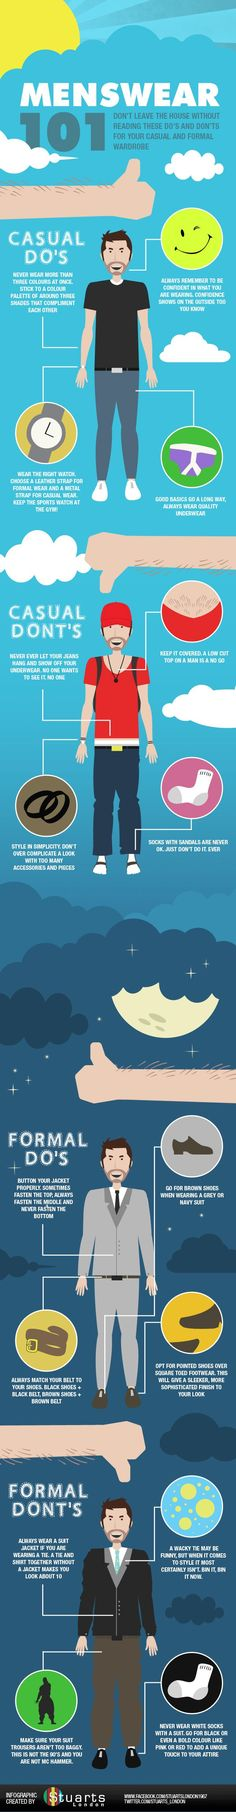 Infographic: Menswear 101: The Do's and Don'ts